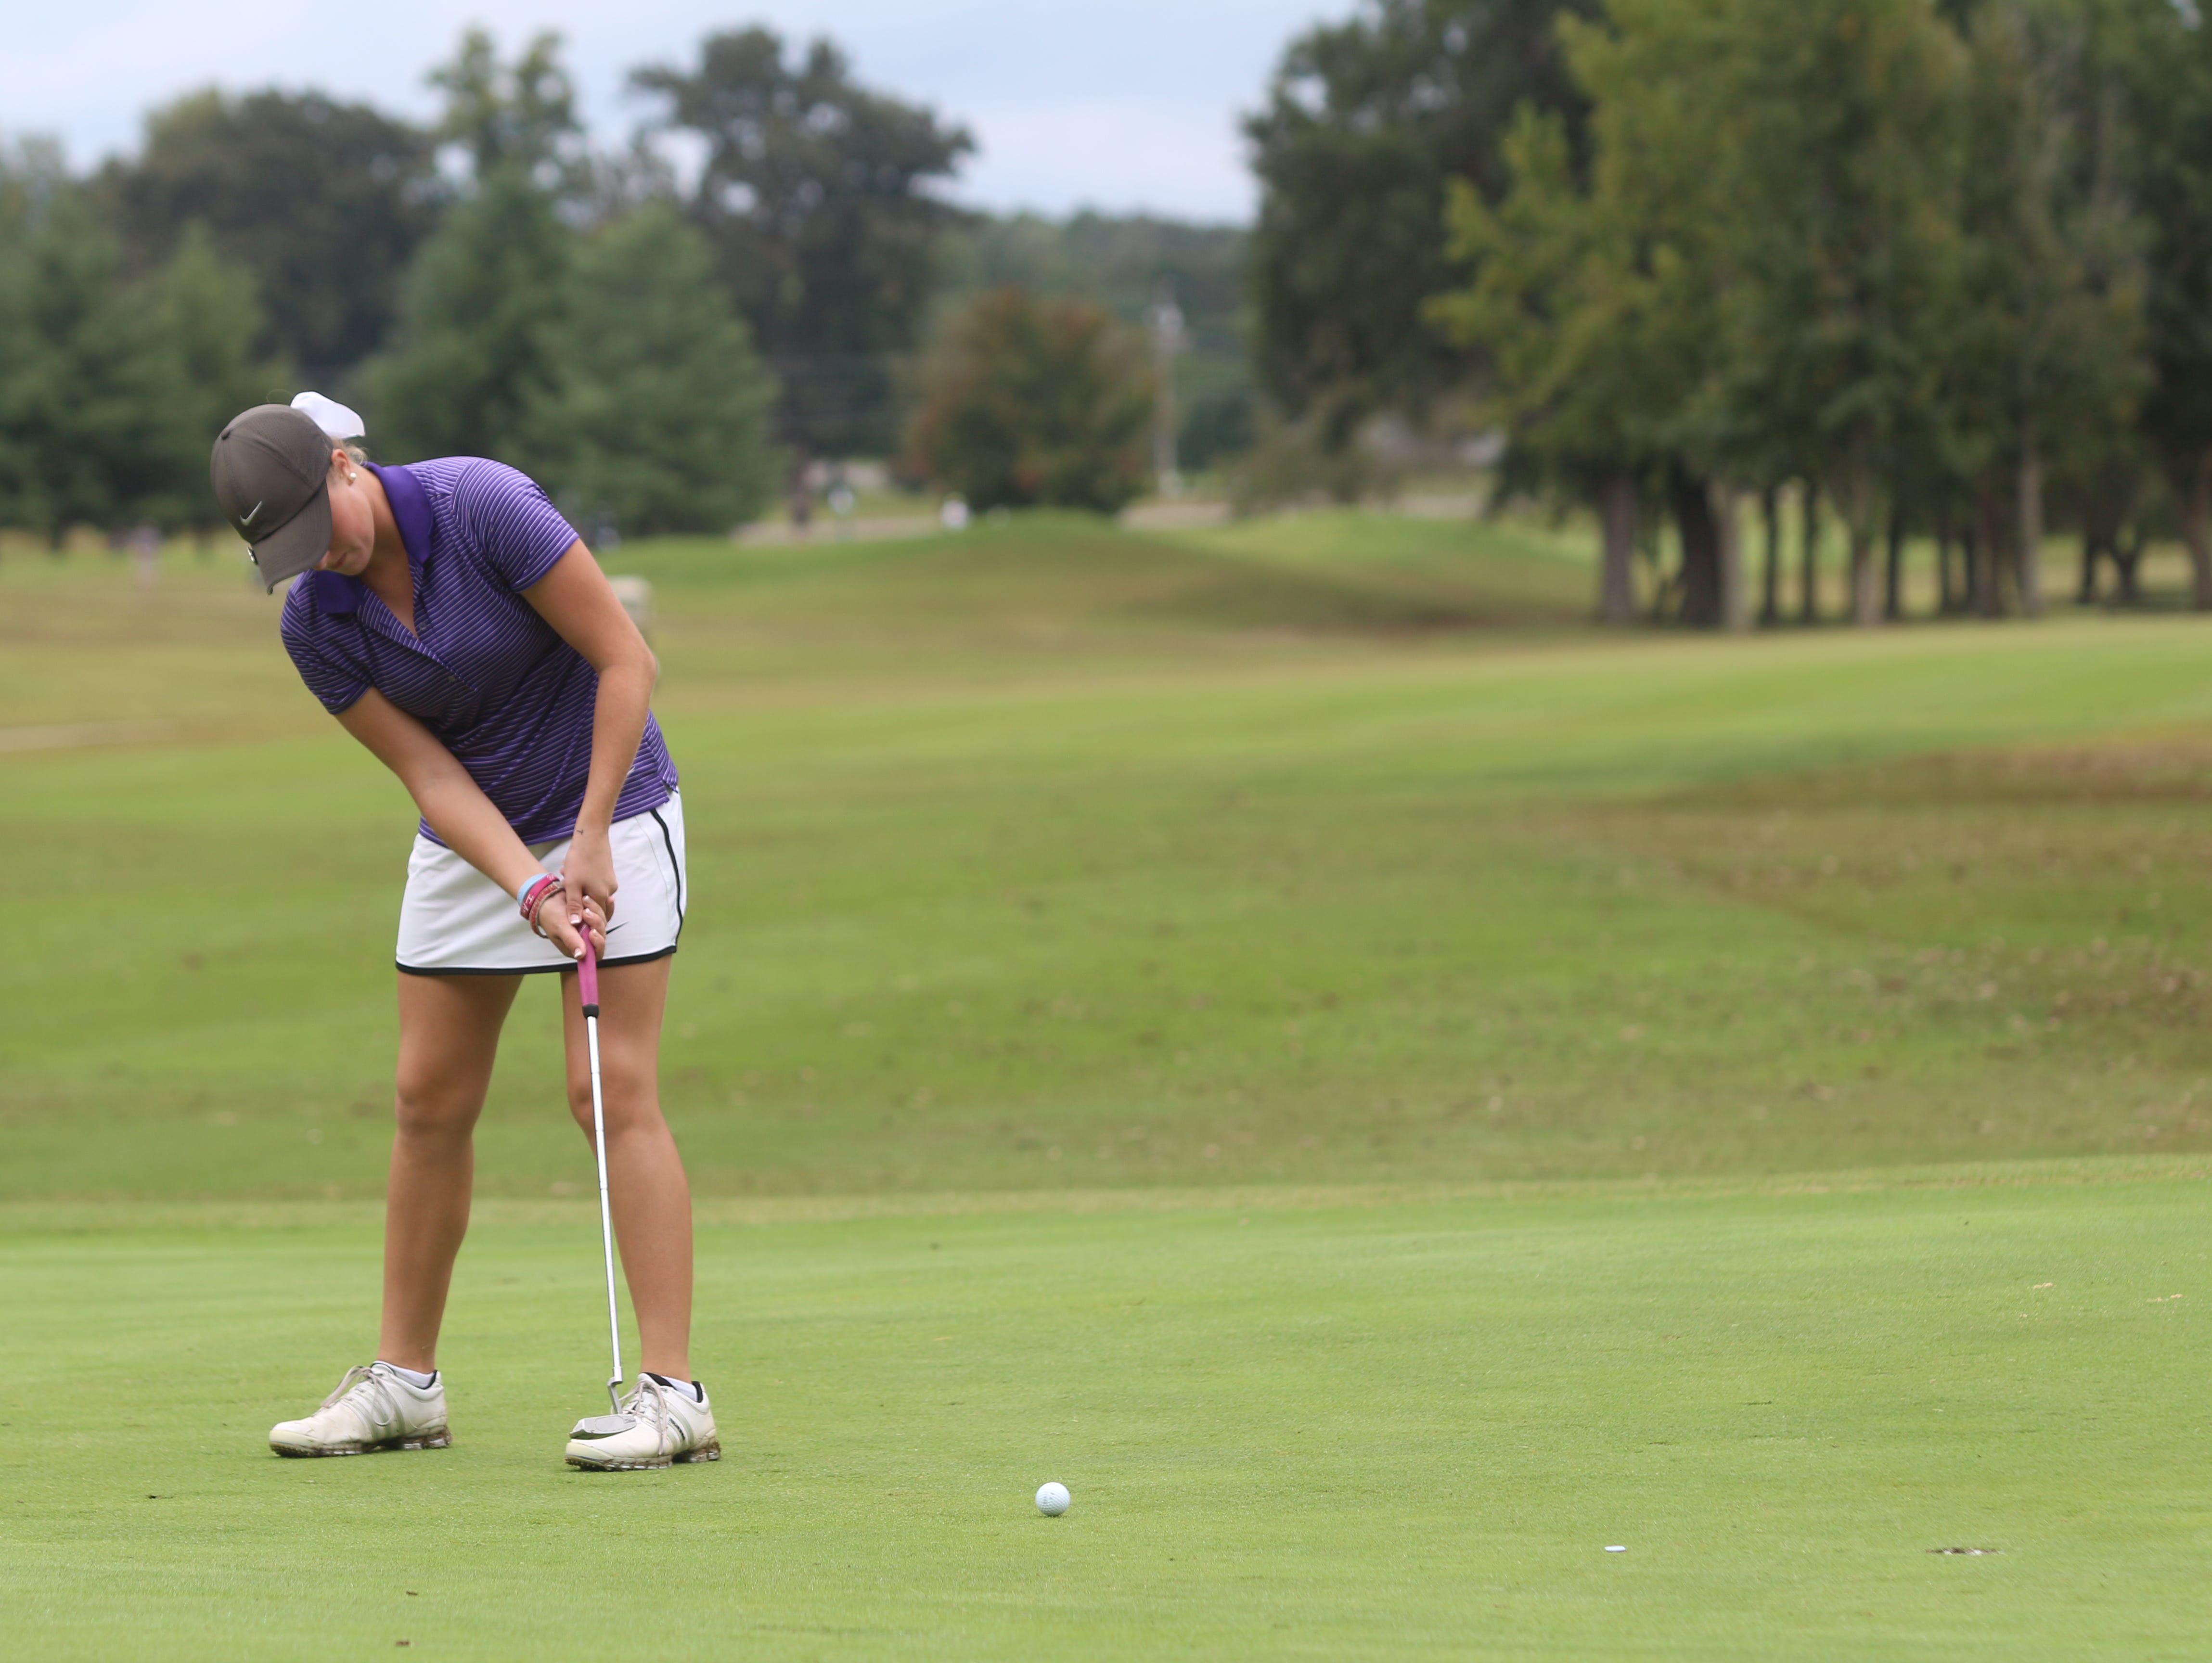 Clarksville High's Riley Cooper connects on a putt on the 13th green during the final round of the girls' Class 3A state golf tournament at WillowBrook Golf Course in Manchester.